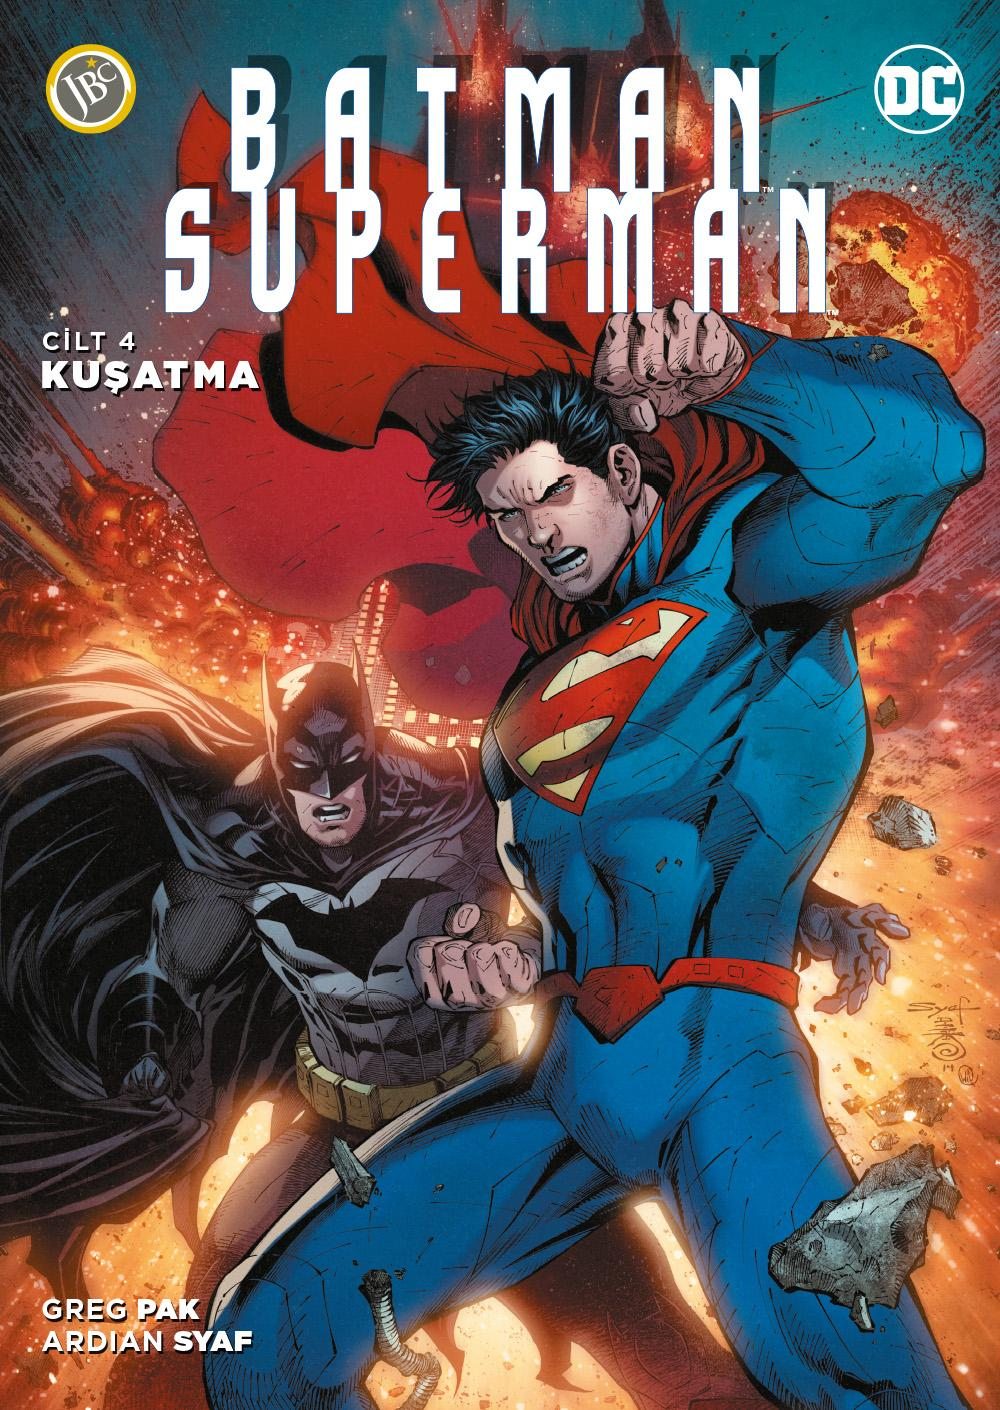 Batman Superman Cilt 4 - Kuşatma